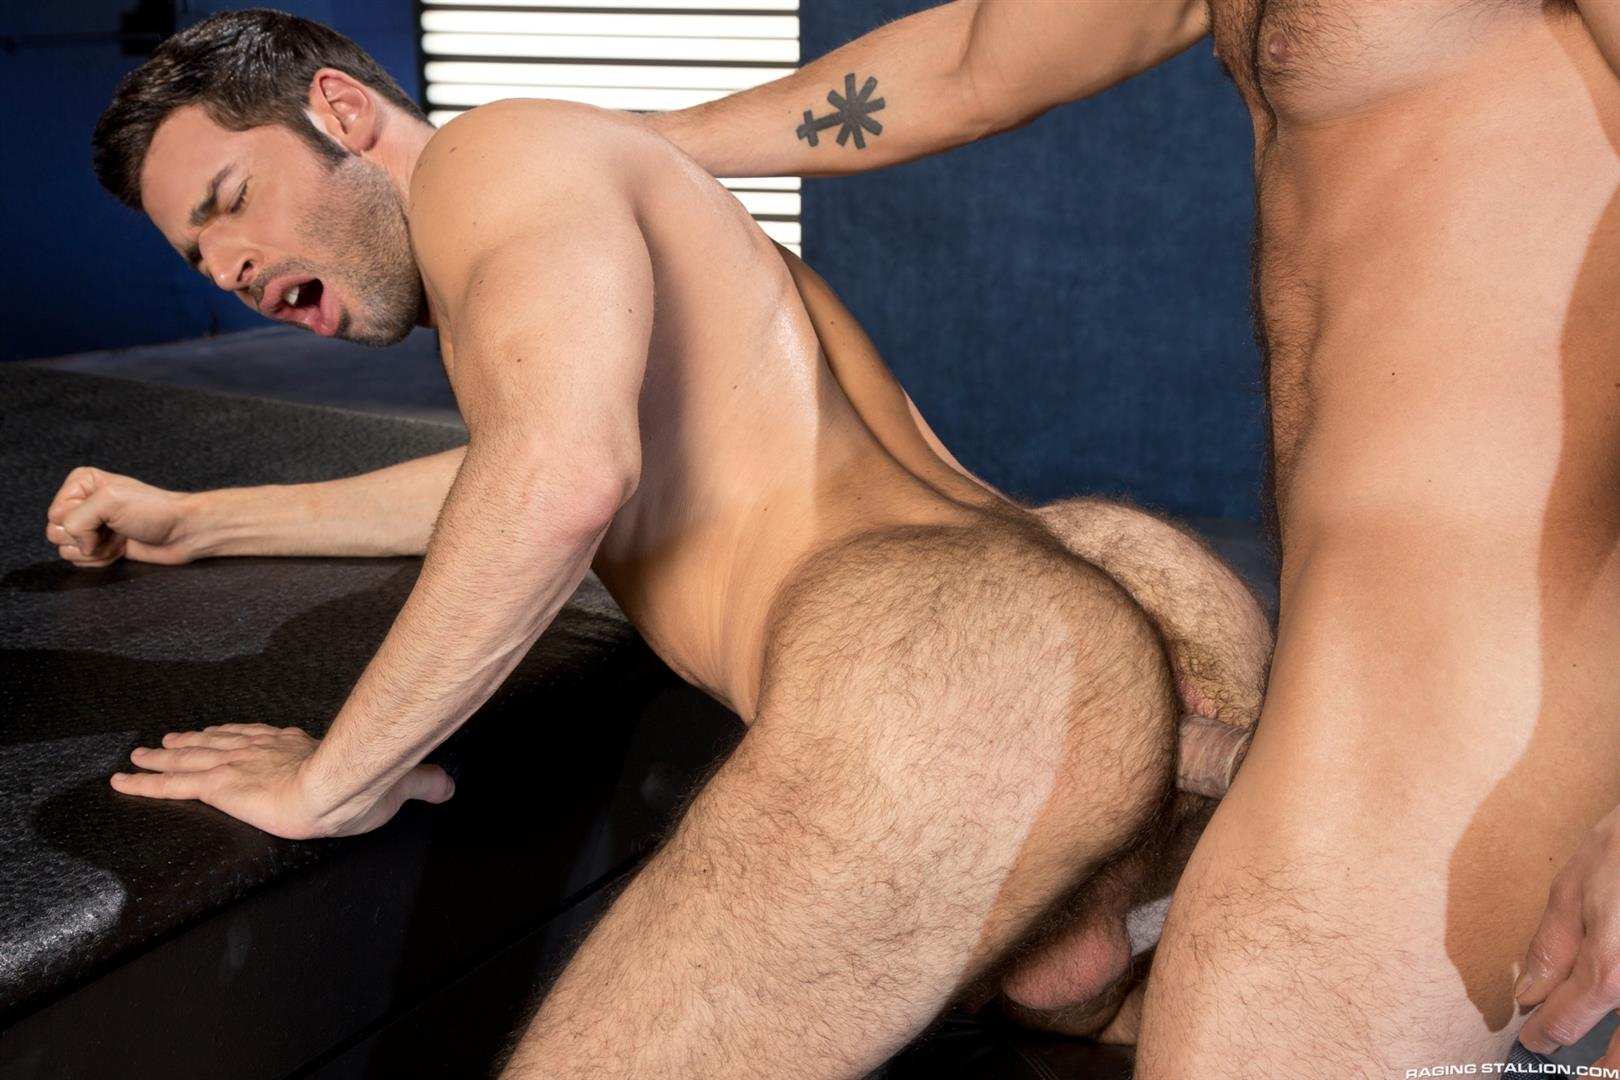 Raging Stallion Adam Ramzi and Dario Beck Hairy Ass And A Big Uncut Cock Amateur Gay Porn 13 Fucking A Hairy Ass Muscle Jock Ass With A Big Uncut Cock